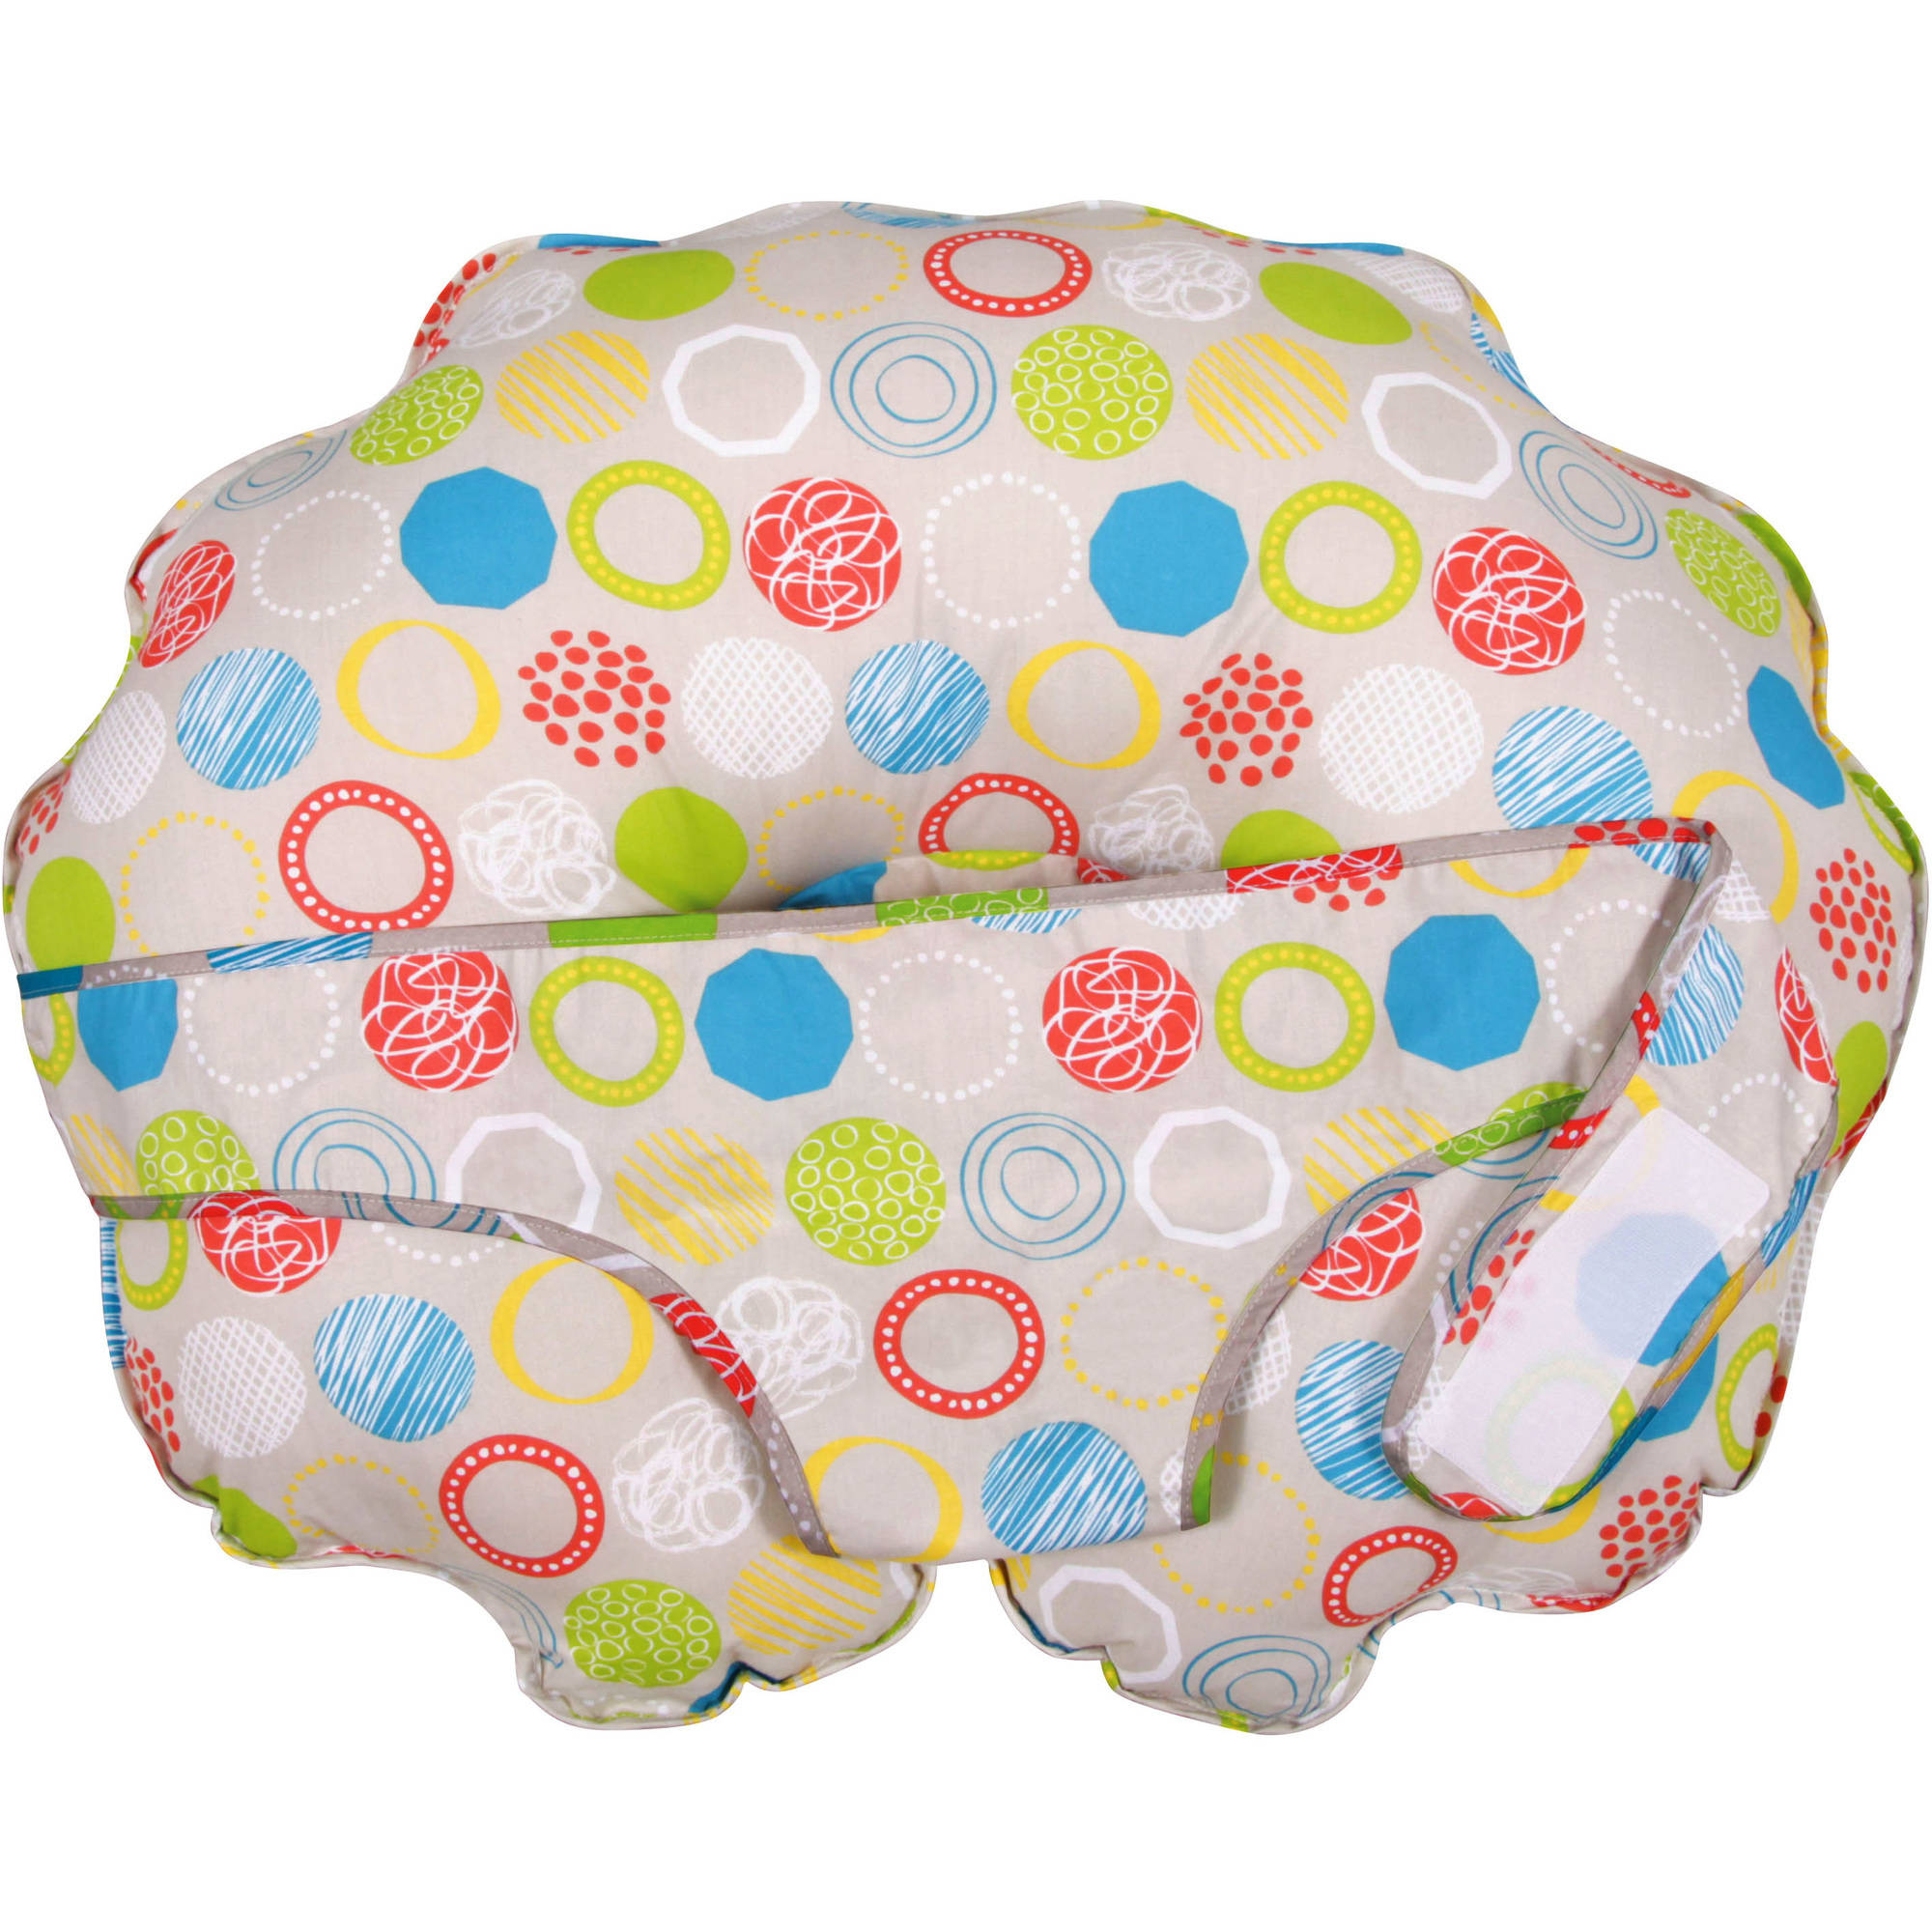 Leachco Cuddle-U Nursing Pillow & More with Slipcover, Whimsy Rounds